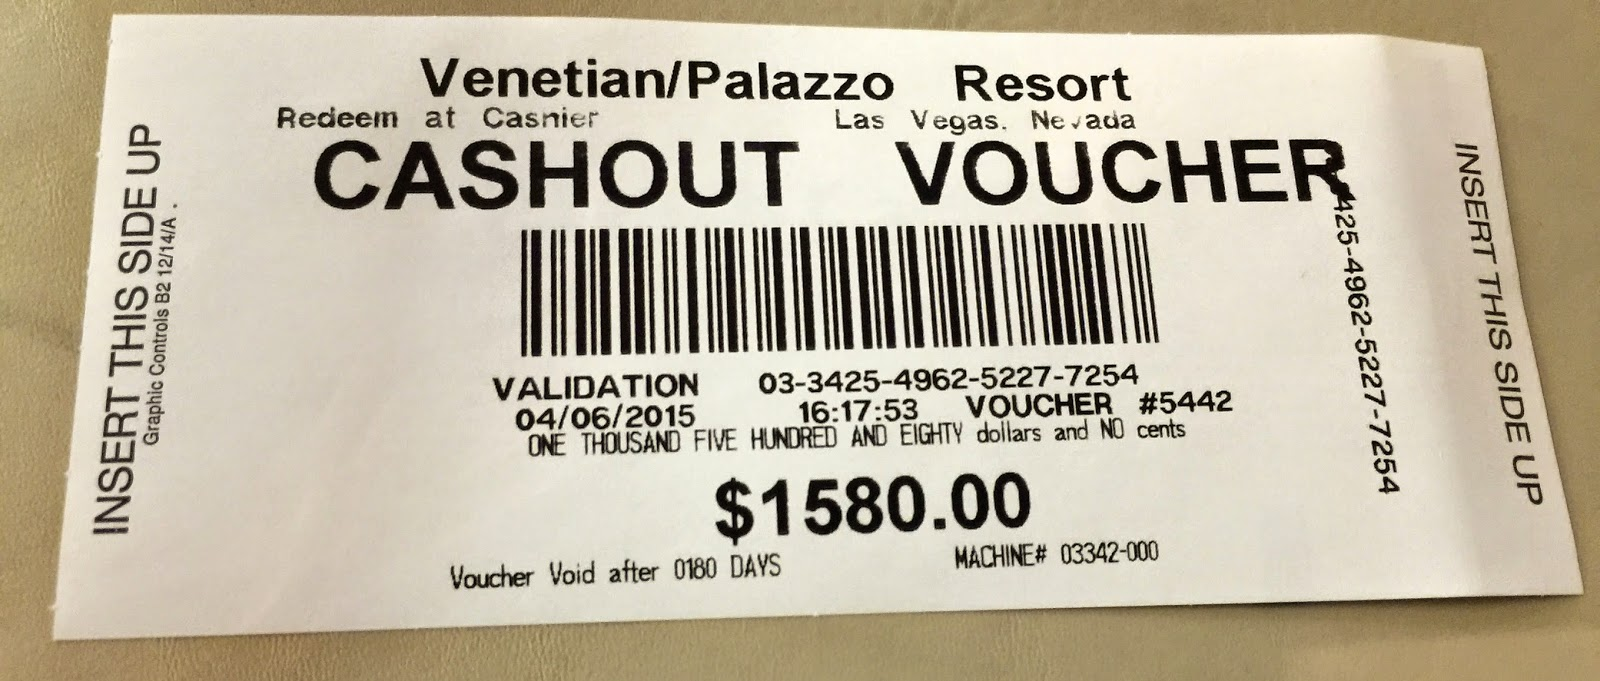 Casino cash out orleans casino las vegas sazio